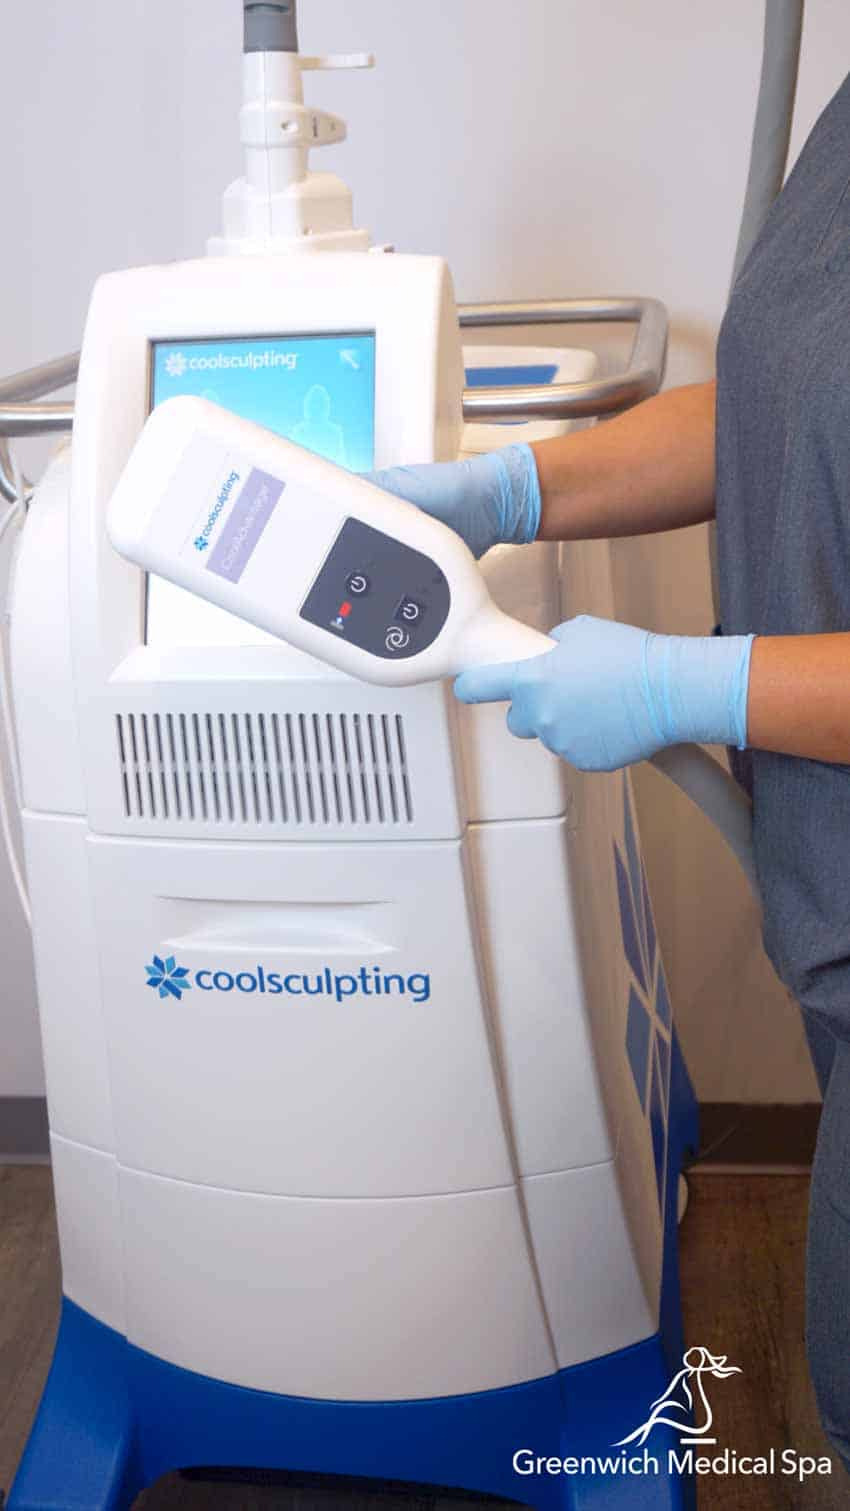 CoolSculpting Applicators